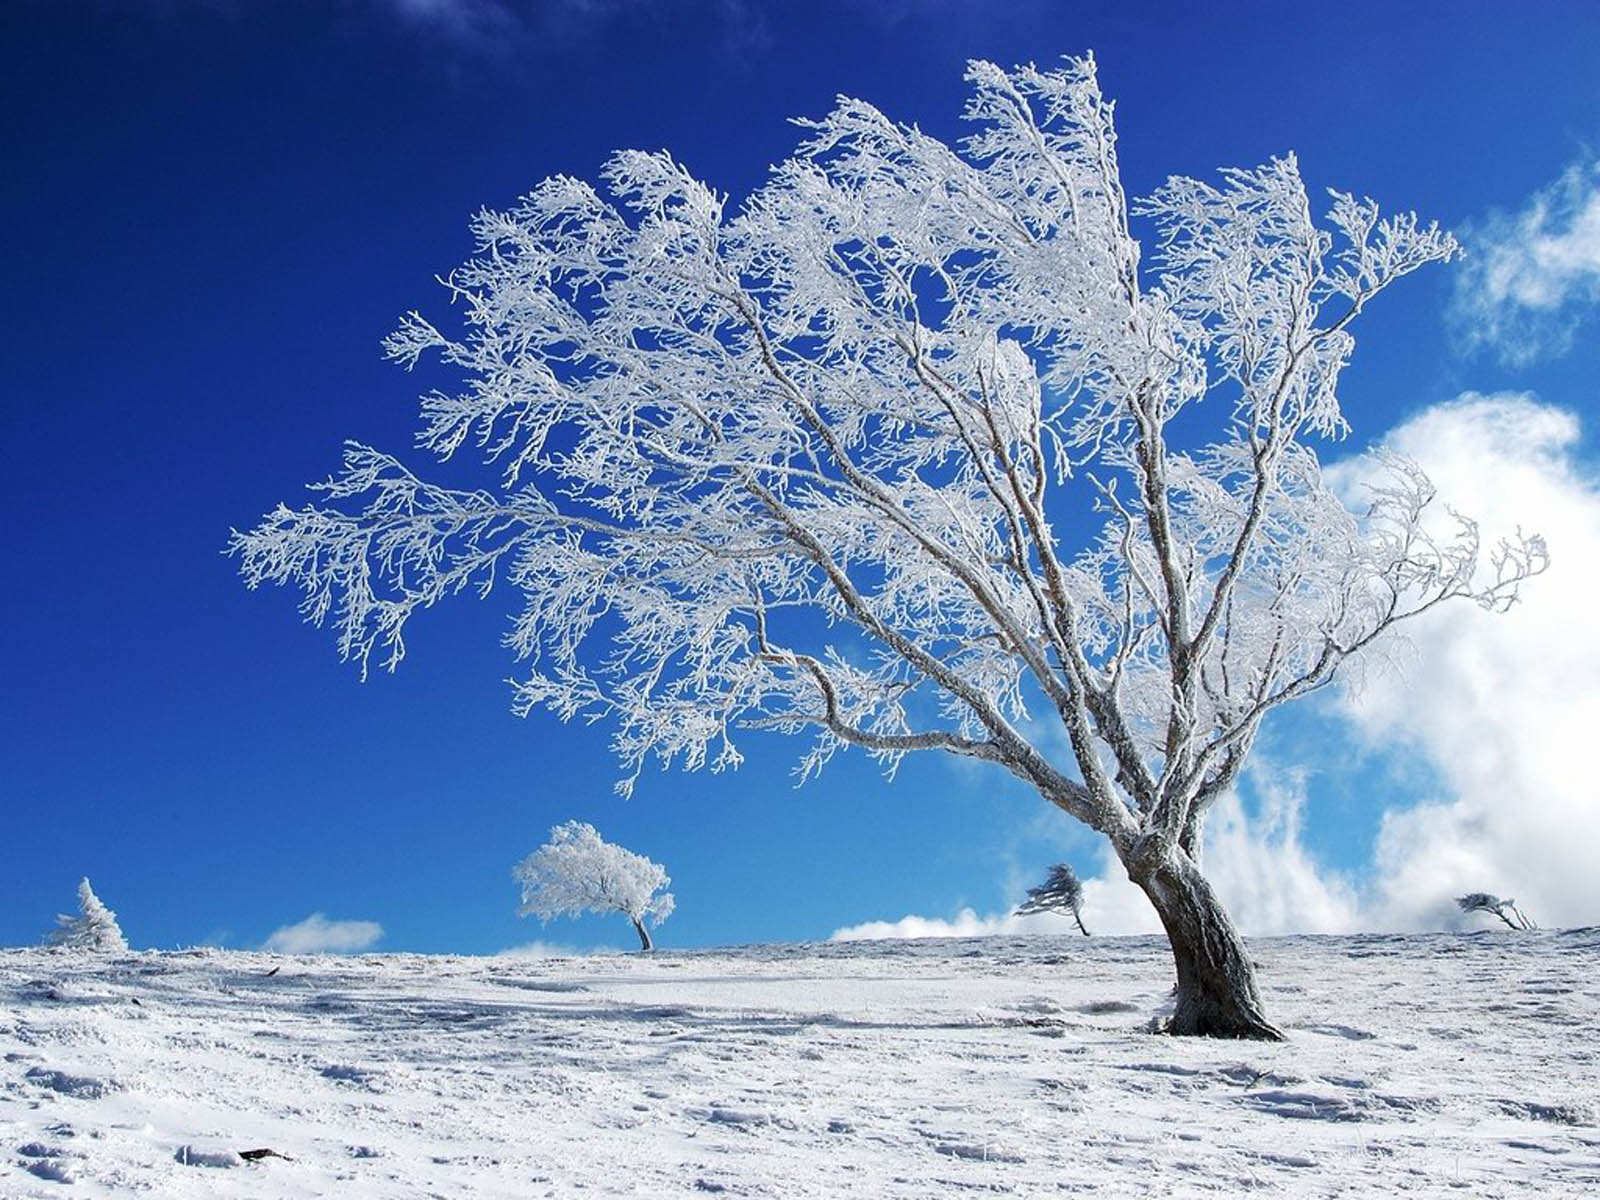 Winter Wallpaper For Desktops